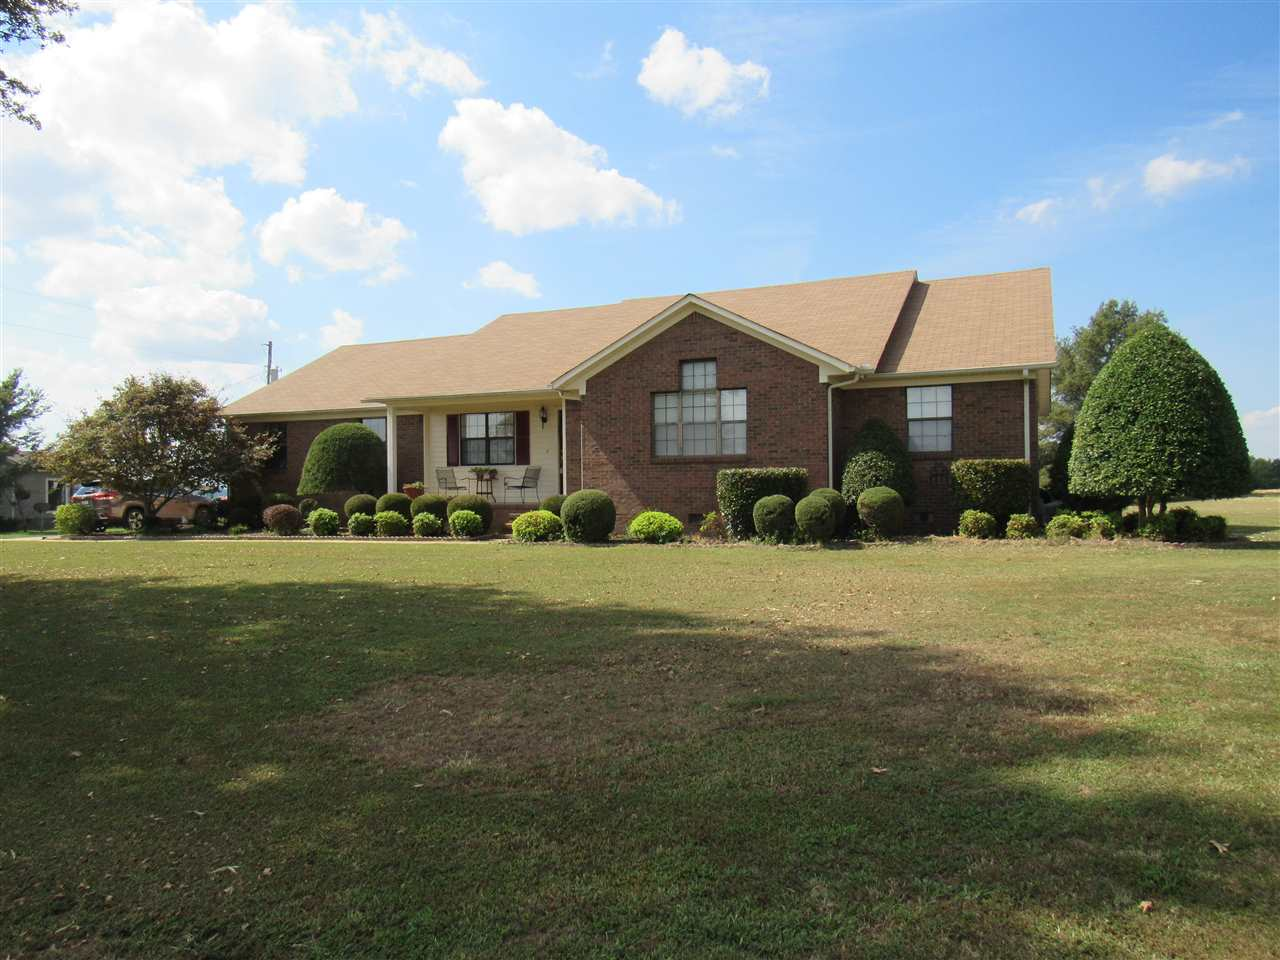 2165 Old Fowlkes Rd, Dyersburg, Tennessee 38024, 3 Bedrooms Bedrooms, ,2 BathroomsBathrooms,Residential,For Sale,2165 Old Fowlkes Rd,190981